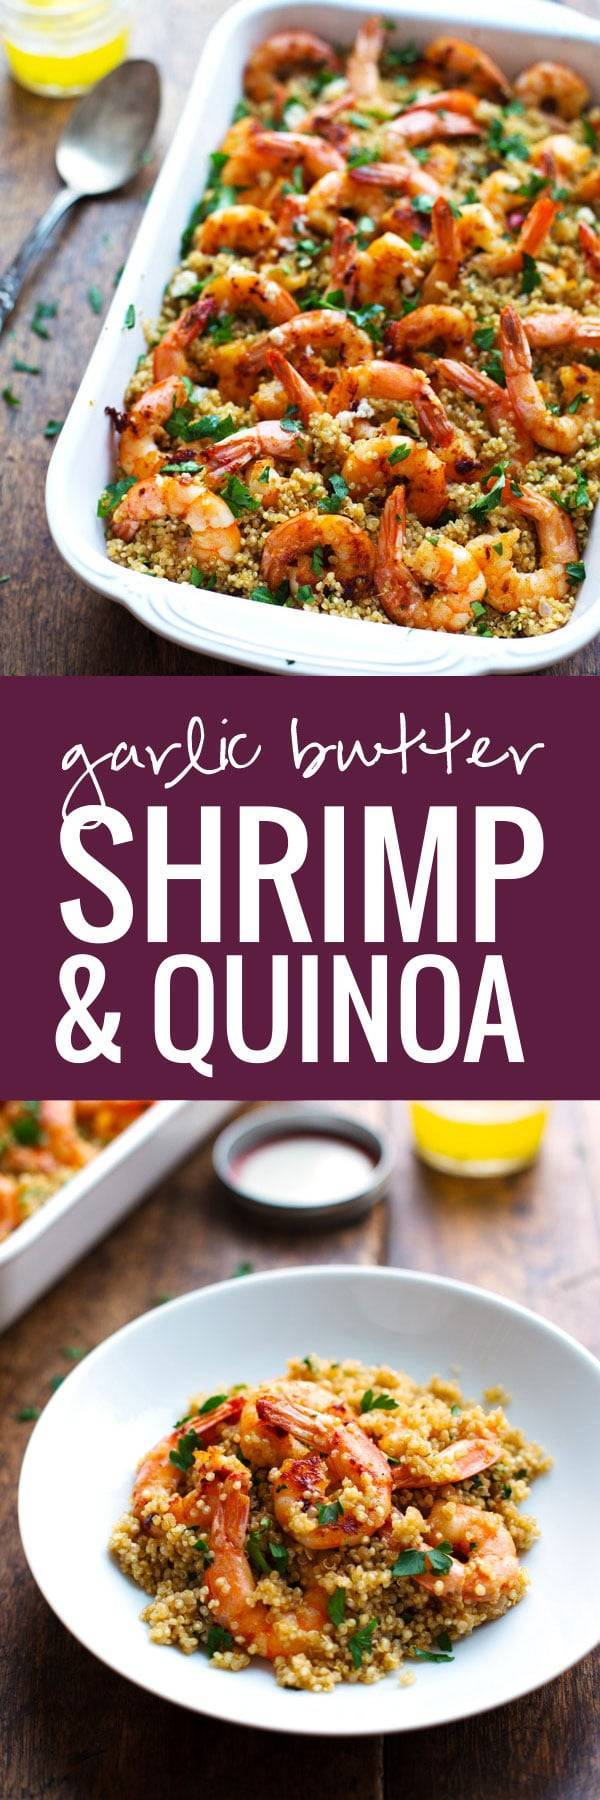 Garlic butter shrimp and quinoa recipe pinch of yum garlic butter shrimp and quinoa a simple 30 minute dinner that is elegant and full forumfinder Images